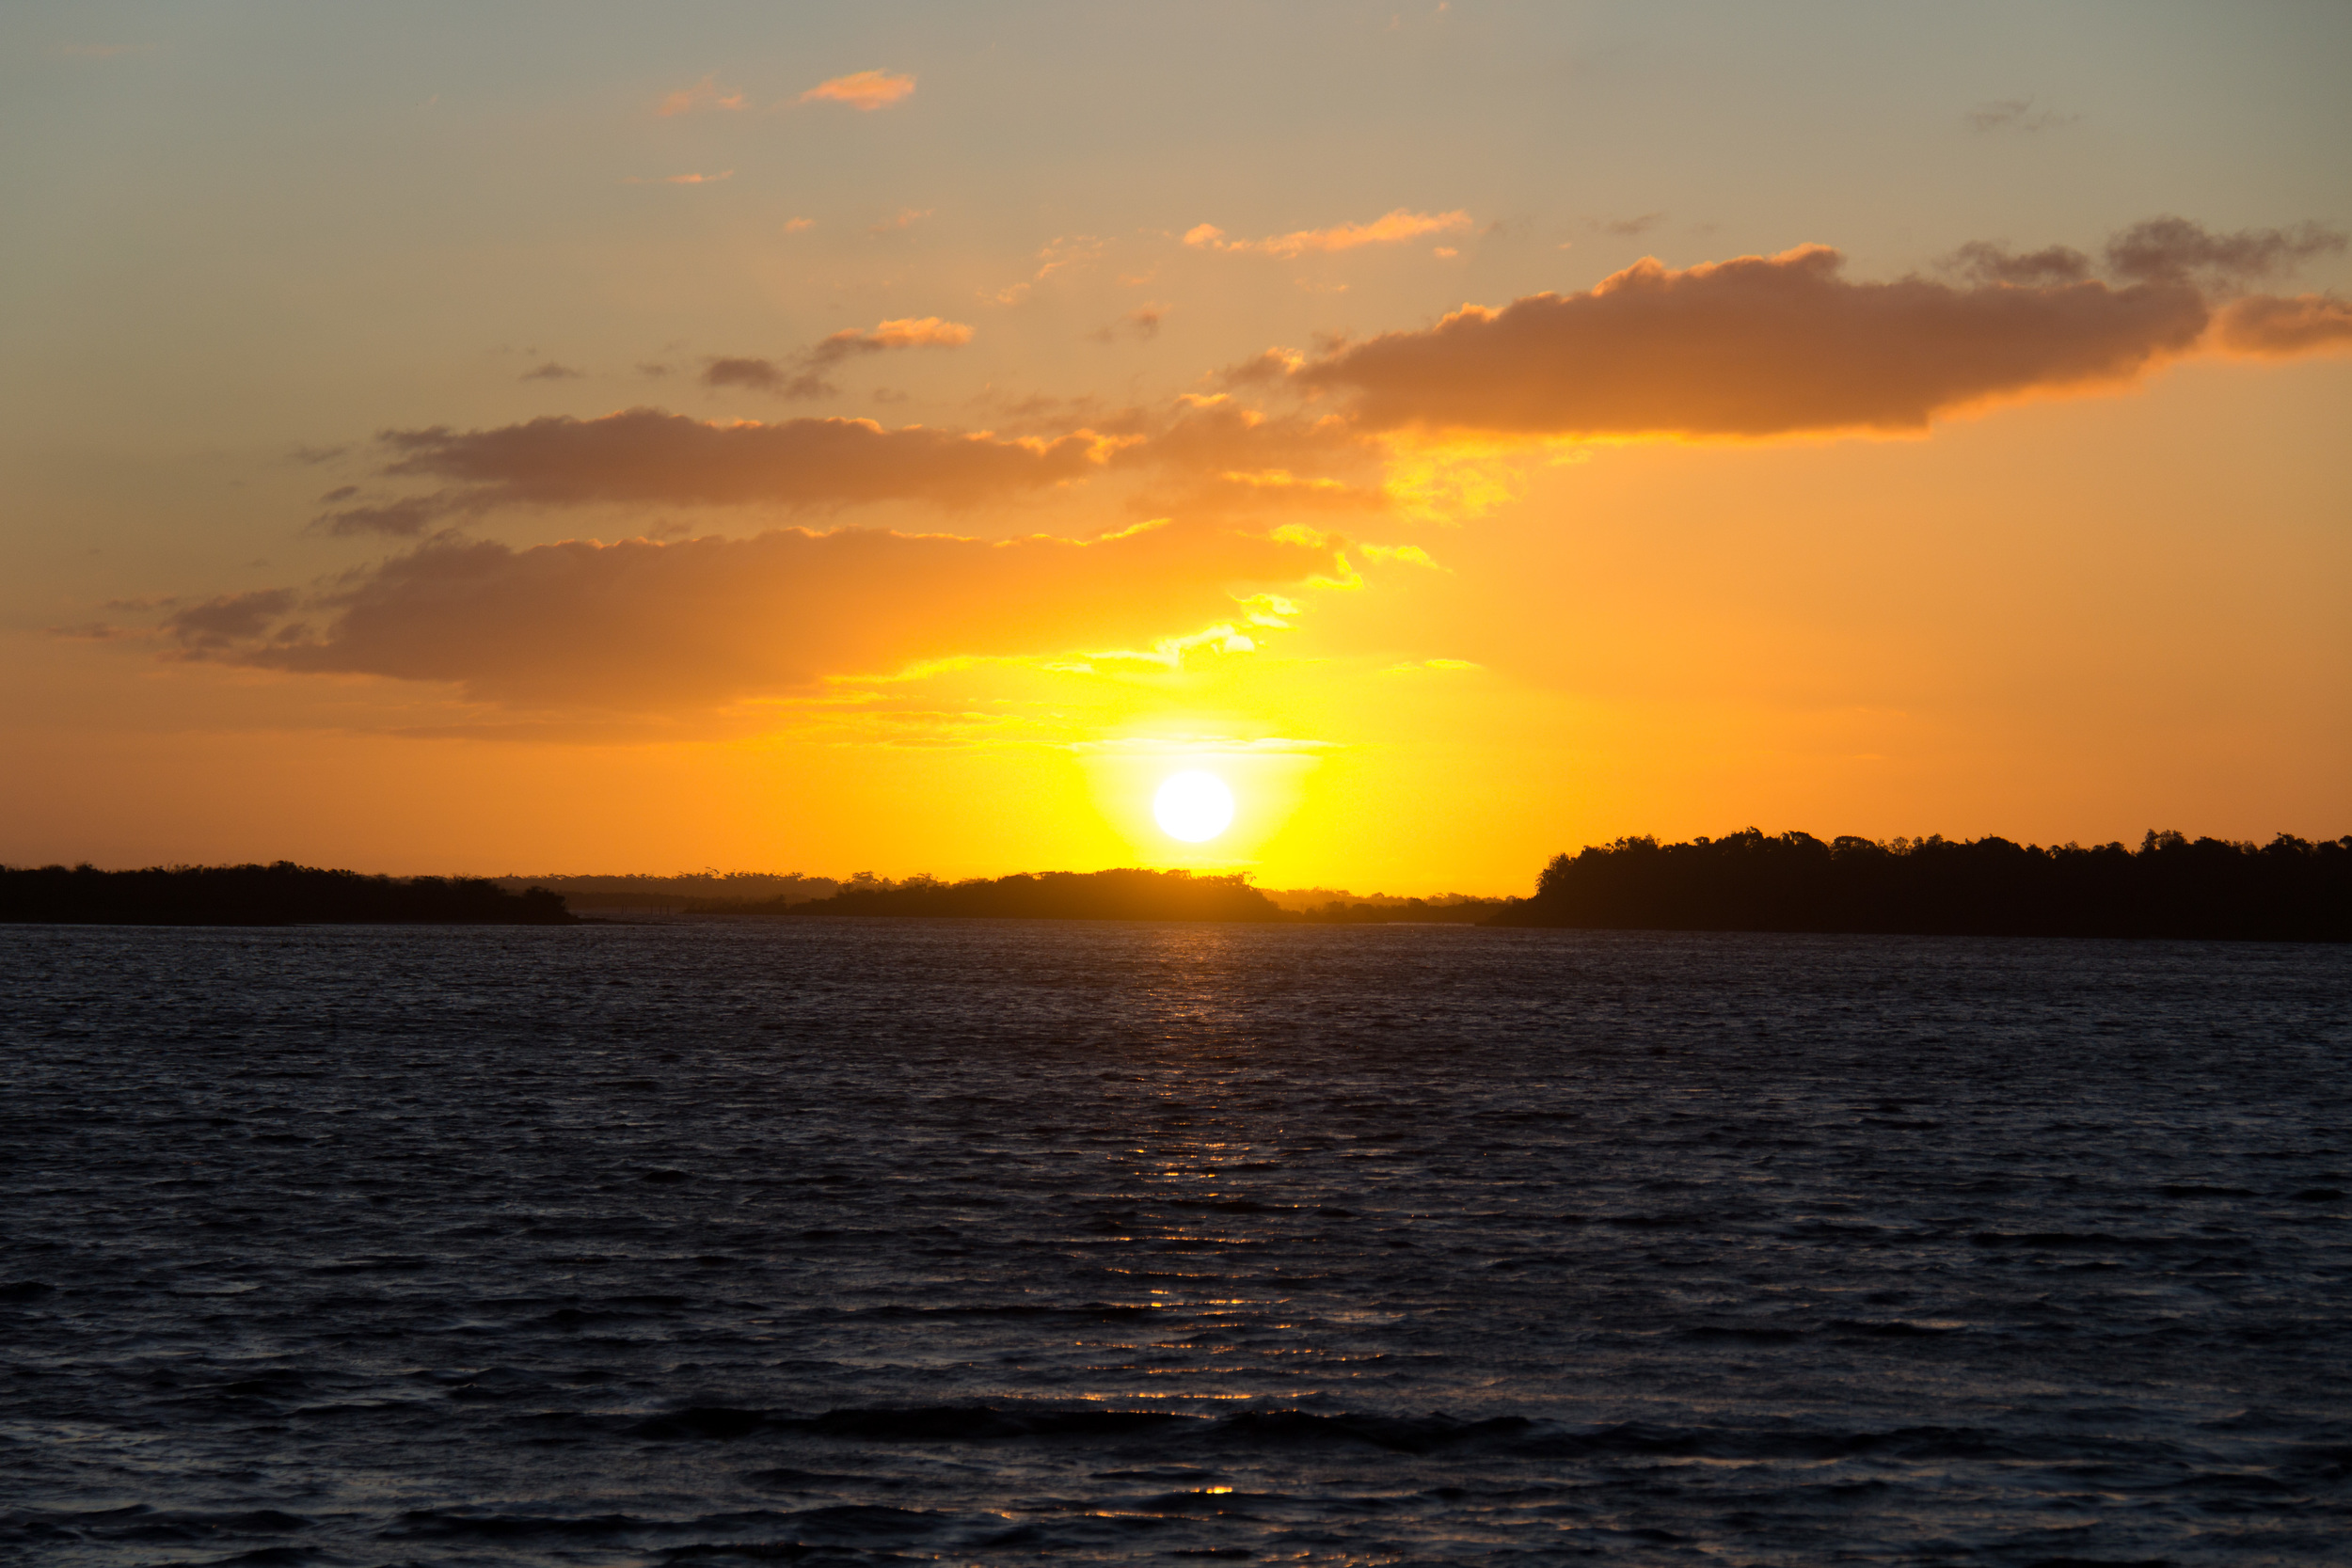 One of the many epic sunsets in the Gippsland Lakes.